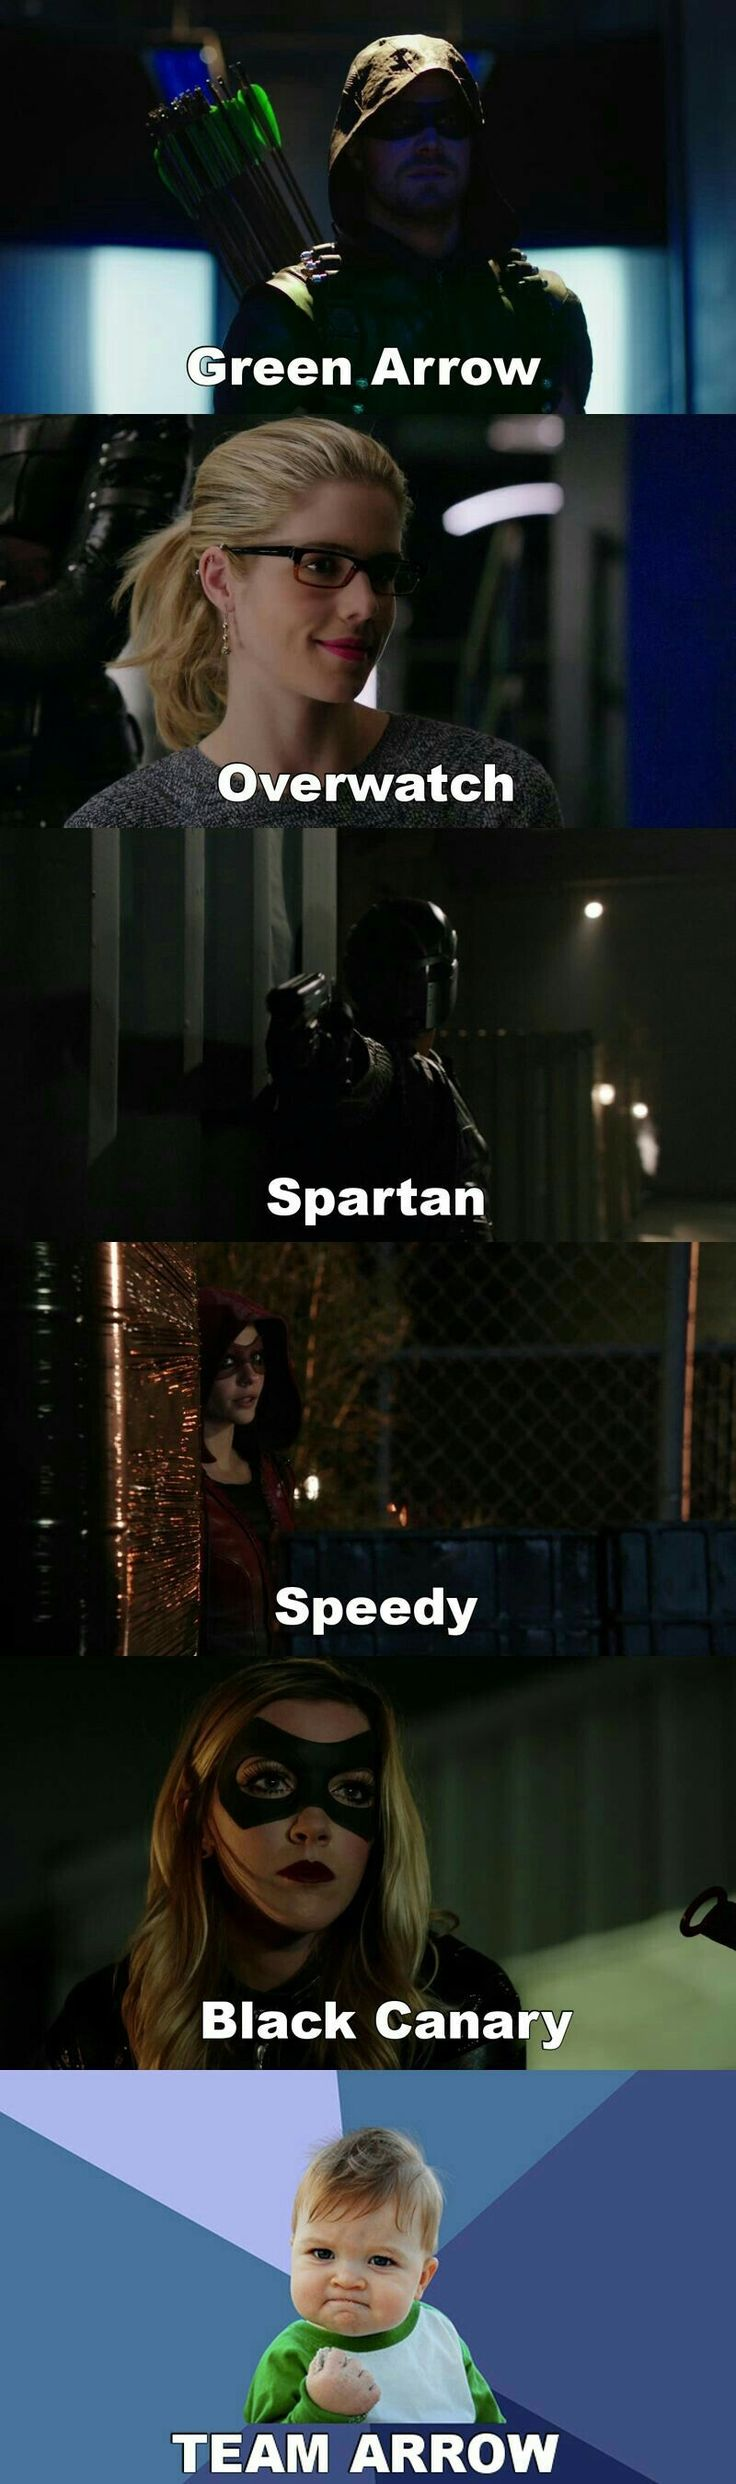 I actually didn't realize Felicity was called Overwatch and Dig was called Spartan. The more you know....